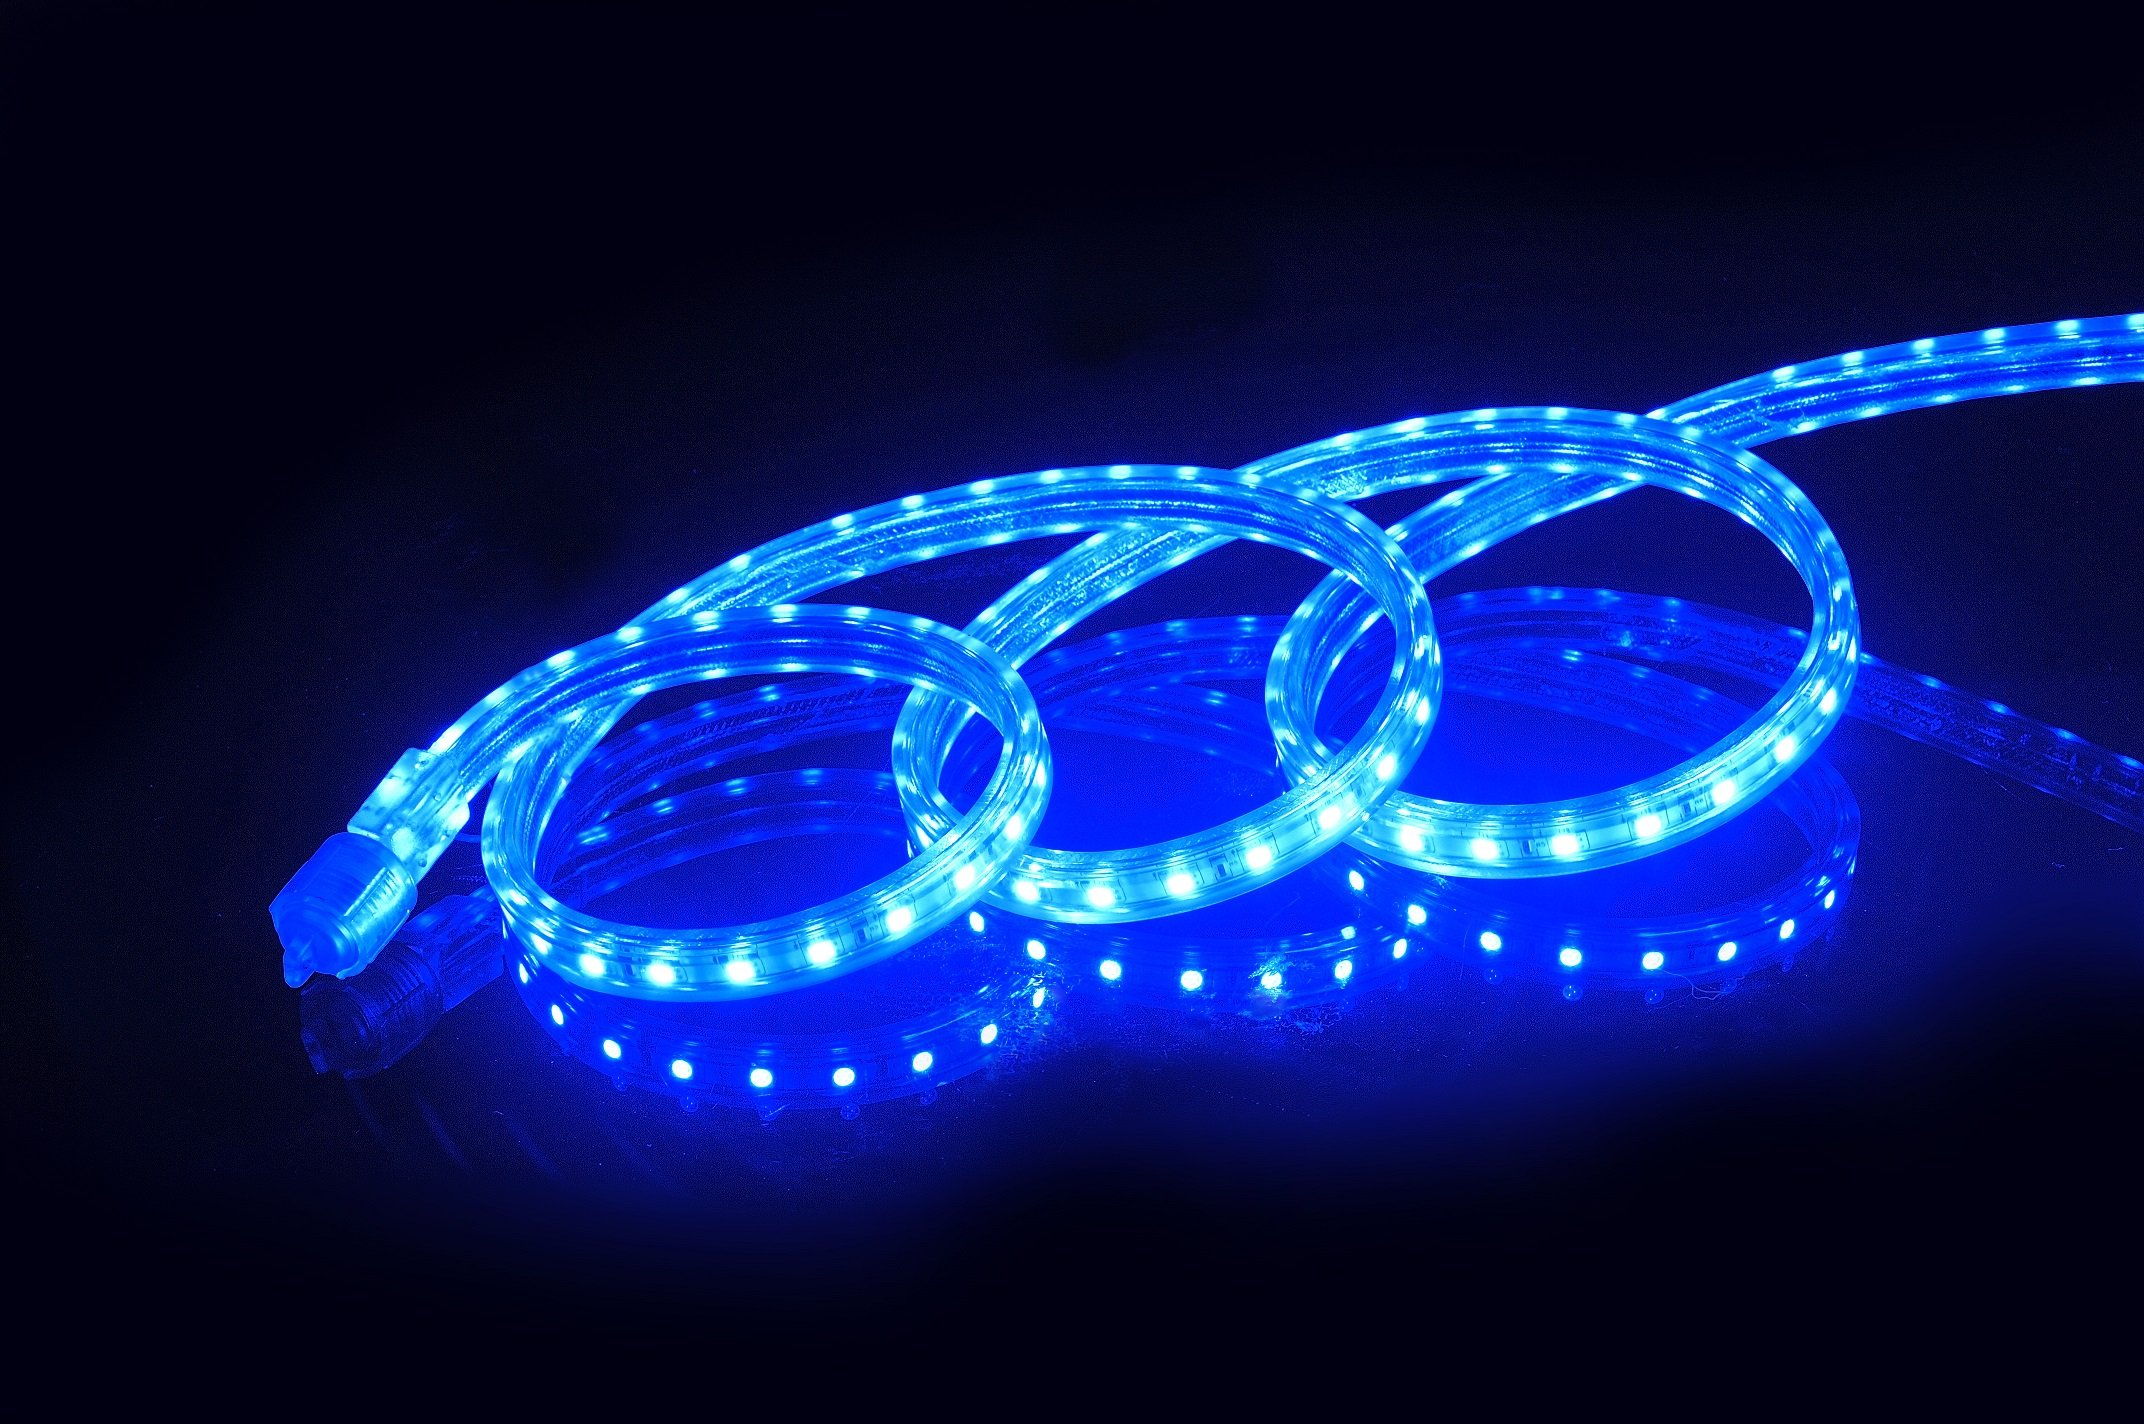 CBConcept UL Listed, 65 Feet,Super Bright 18000 Lumen, Blue, Dimmable, 110-120V AC Flexible Flat LED Strip Rope Light, 1200 Units 5050 SMD LEDs, Indoor/Outdoor Use, [Ready to use] by CBconcept (Image #1)